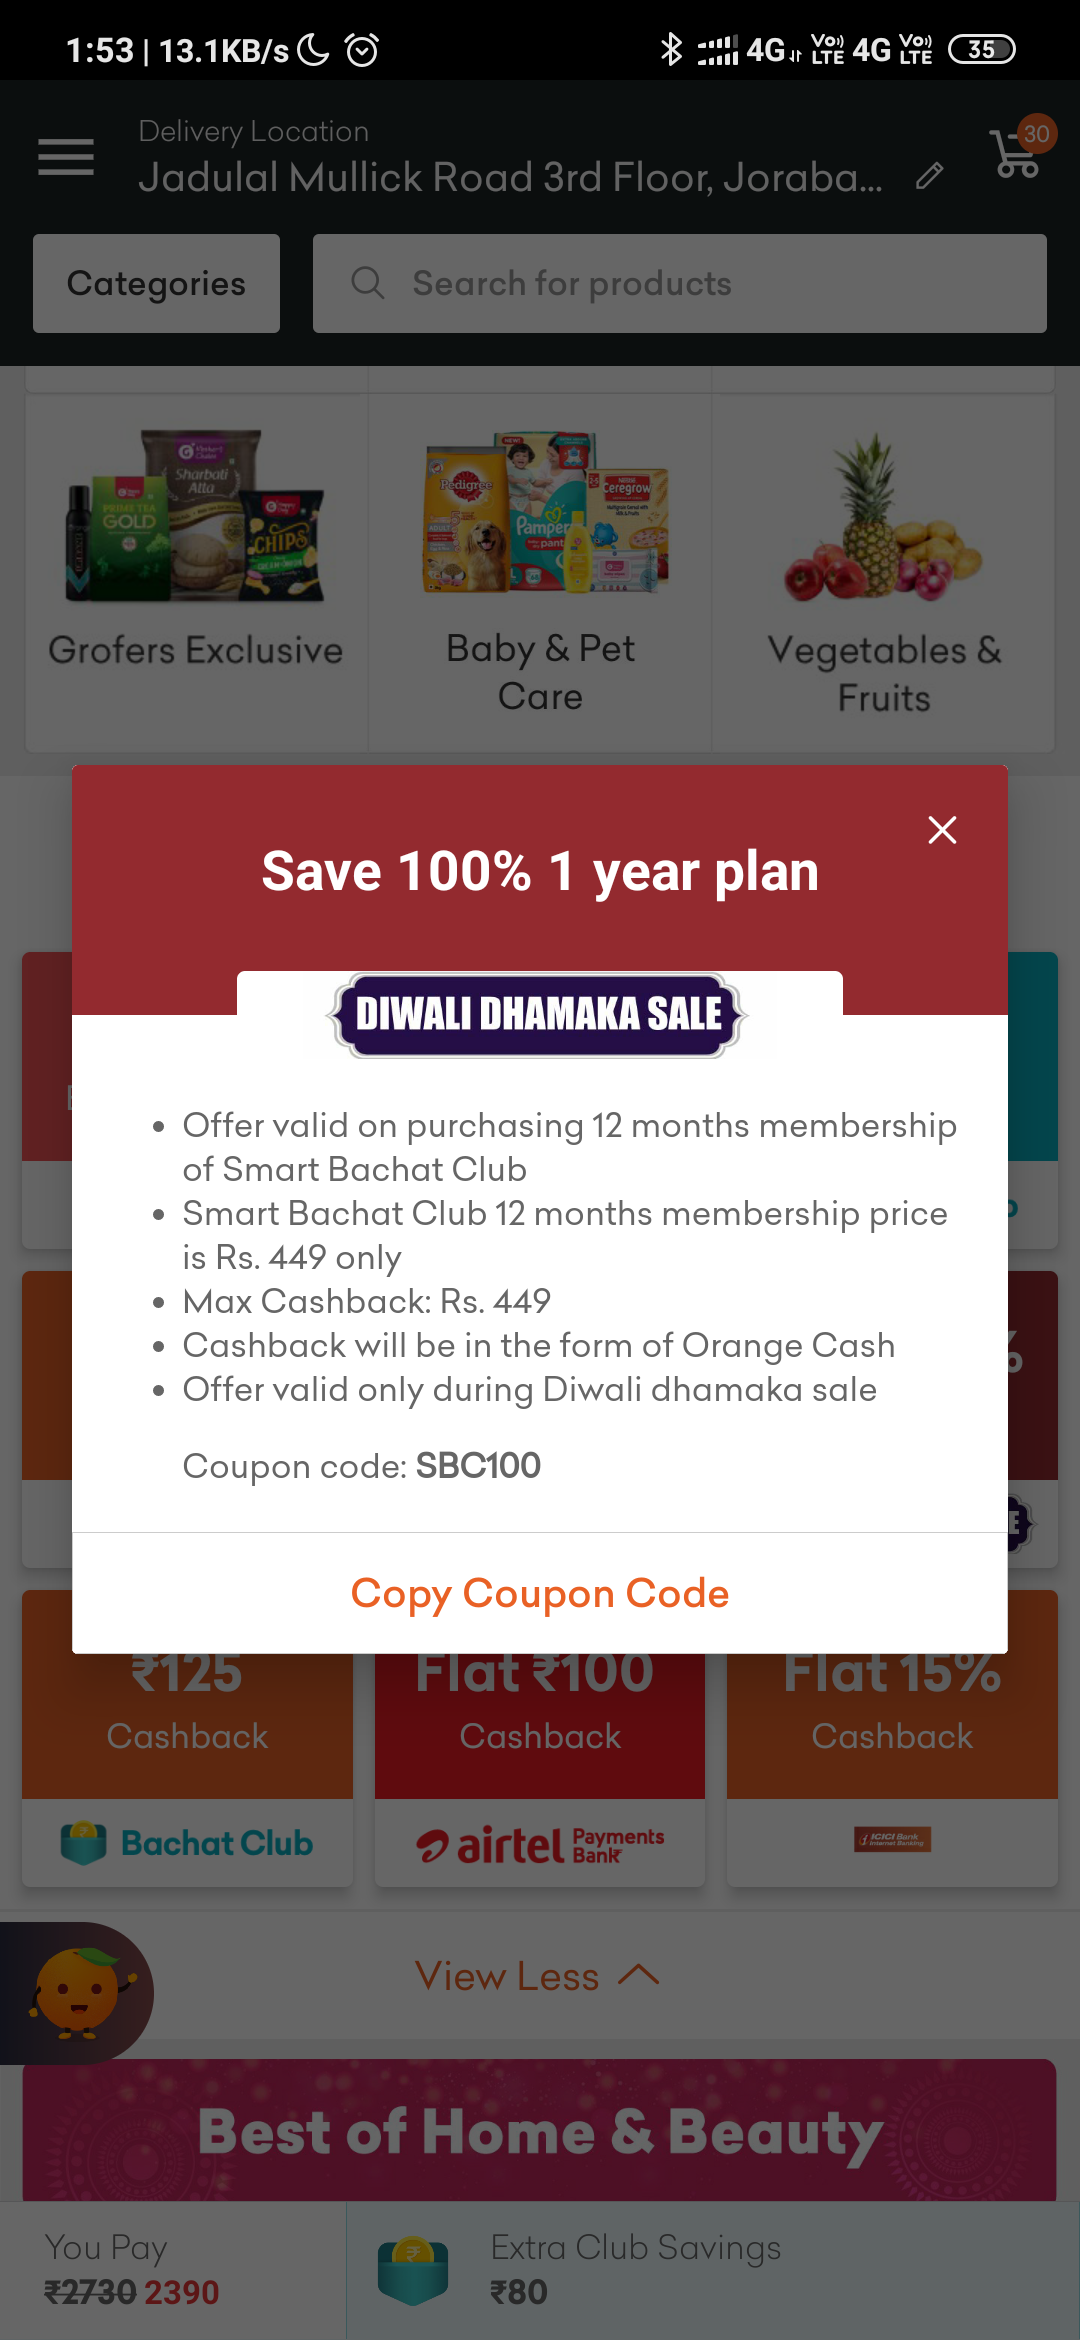 https://cdn0.desidime.com/attachments/photos/591213/original/Screenshot_2019-10-18-01-53-10-054_com.grofers.customerapp.png?1571343800